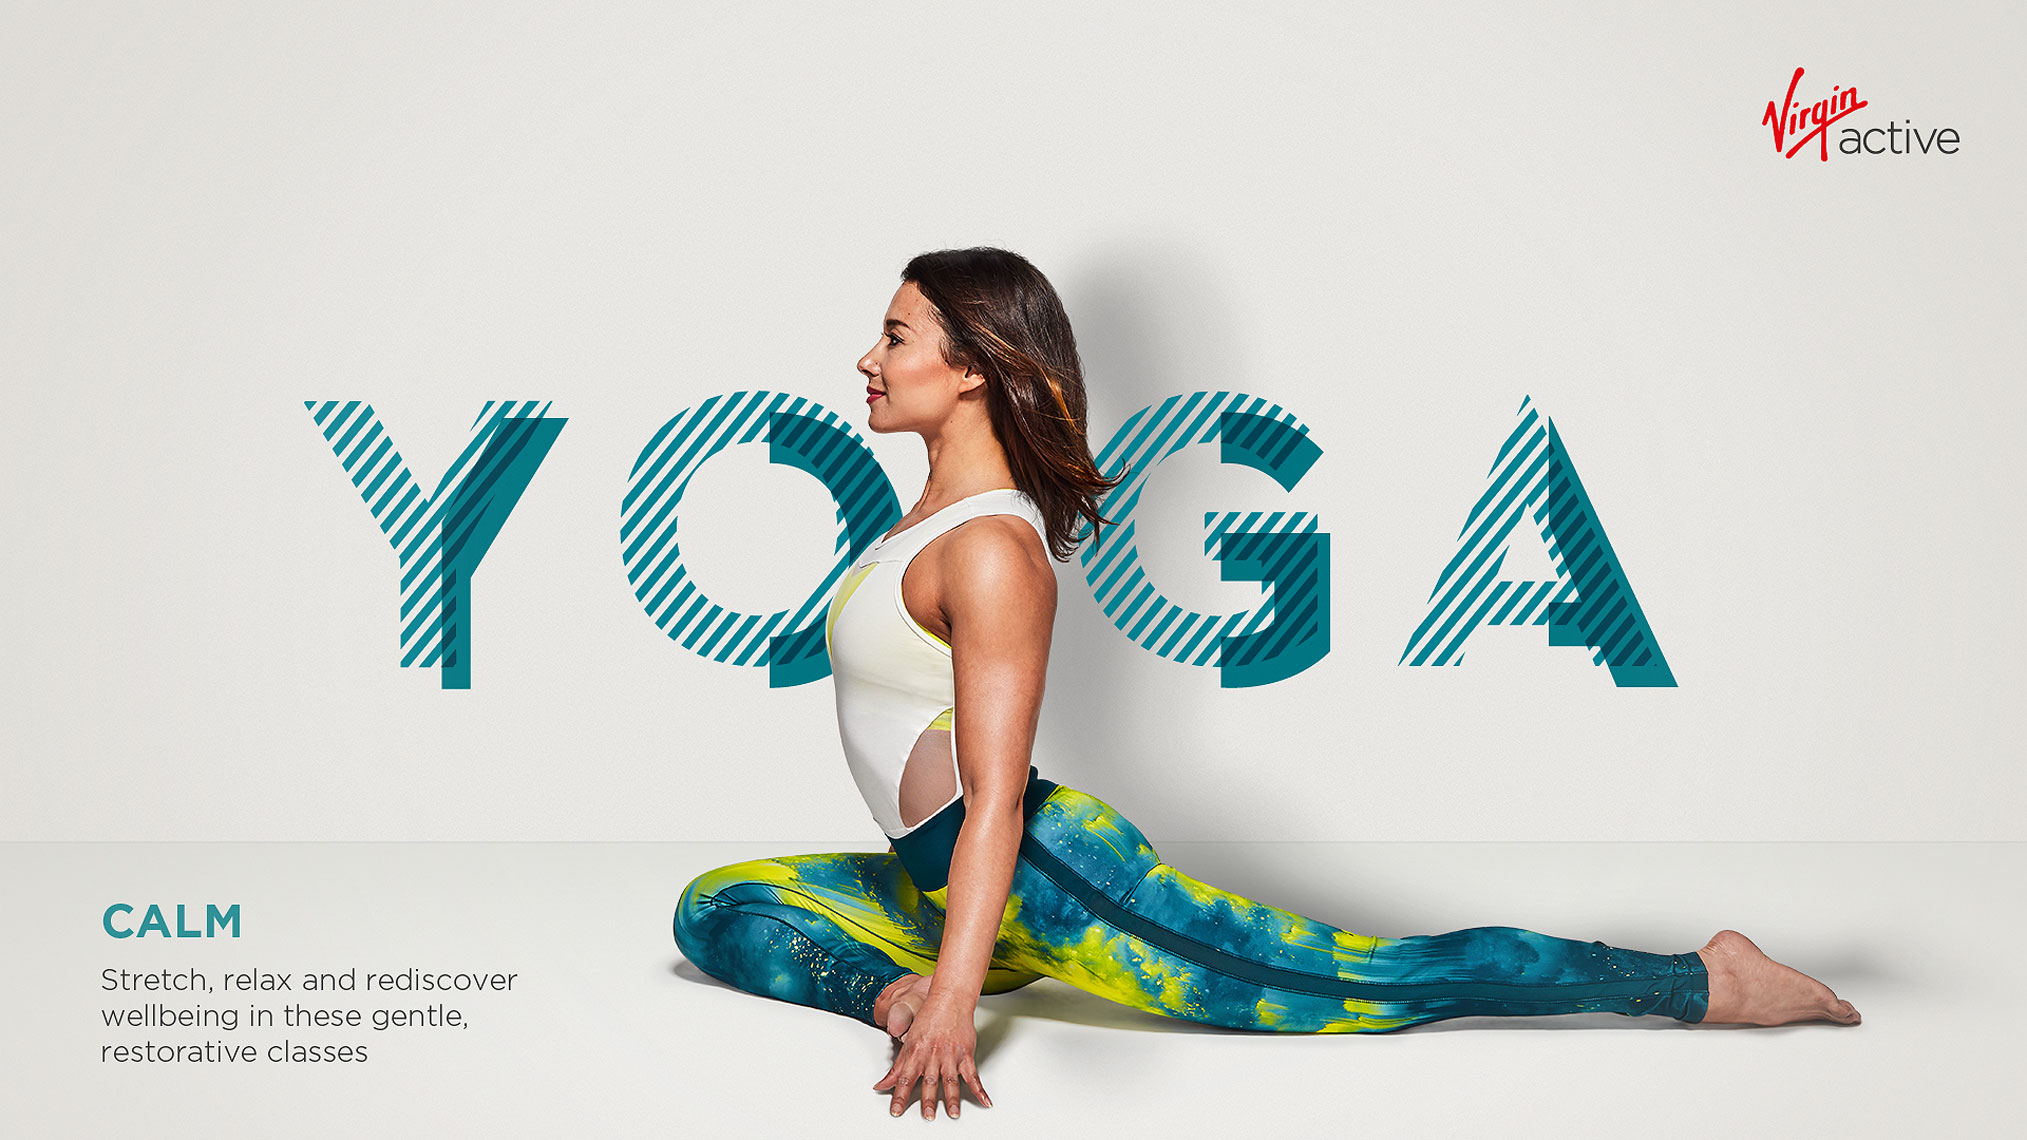 issie-gibbons-fashion-stylist-yoga-virgin-active-campaign-advertising-wellness-fitness